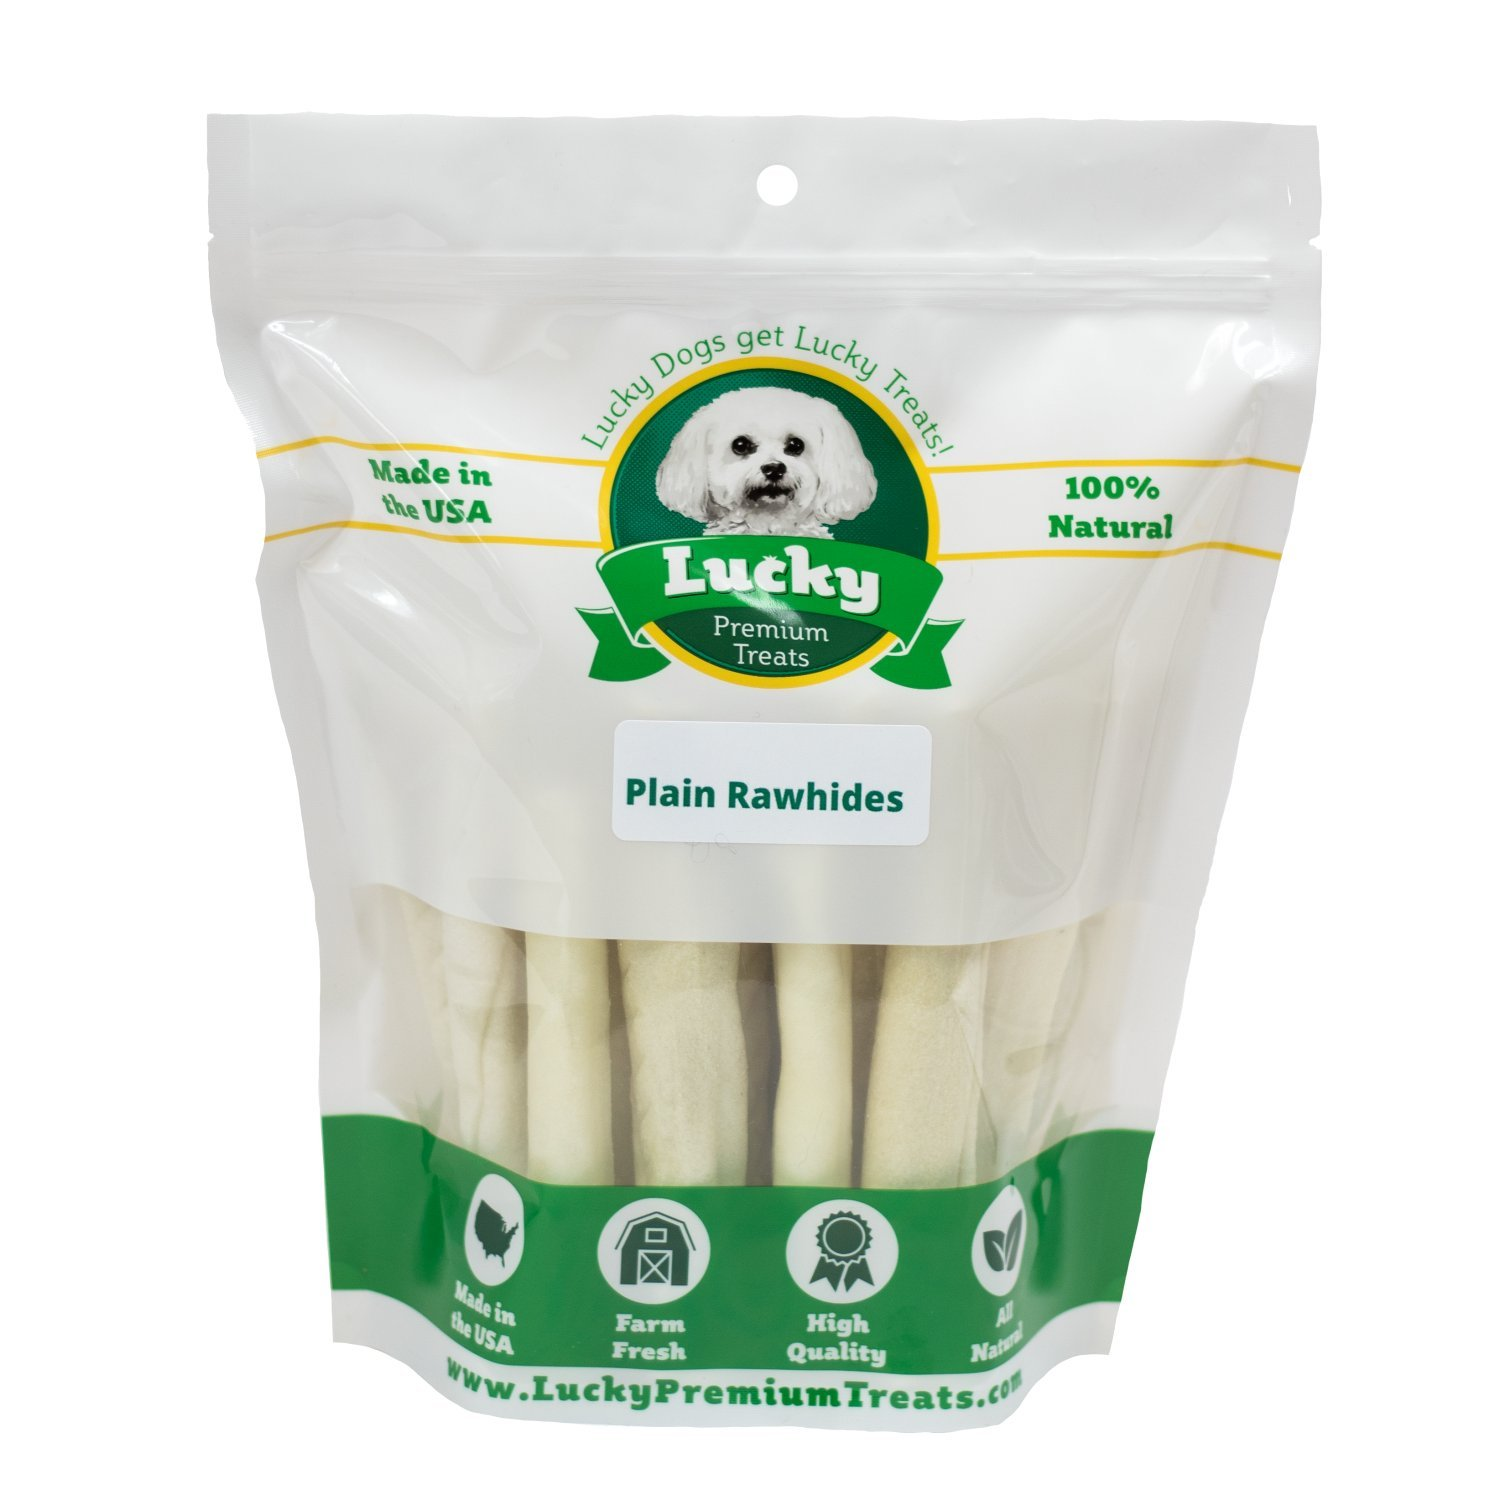 Lucky Premium Treats Plain Rawhide Dog Treats for Medium Dogs Made in The USA Only, 20 Chews by Lucky Premium Treats